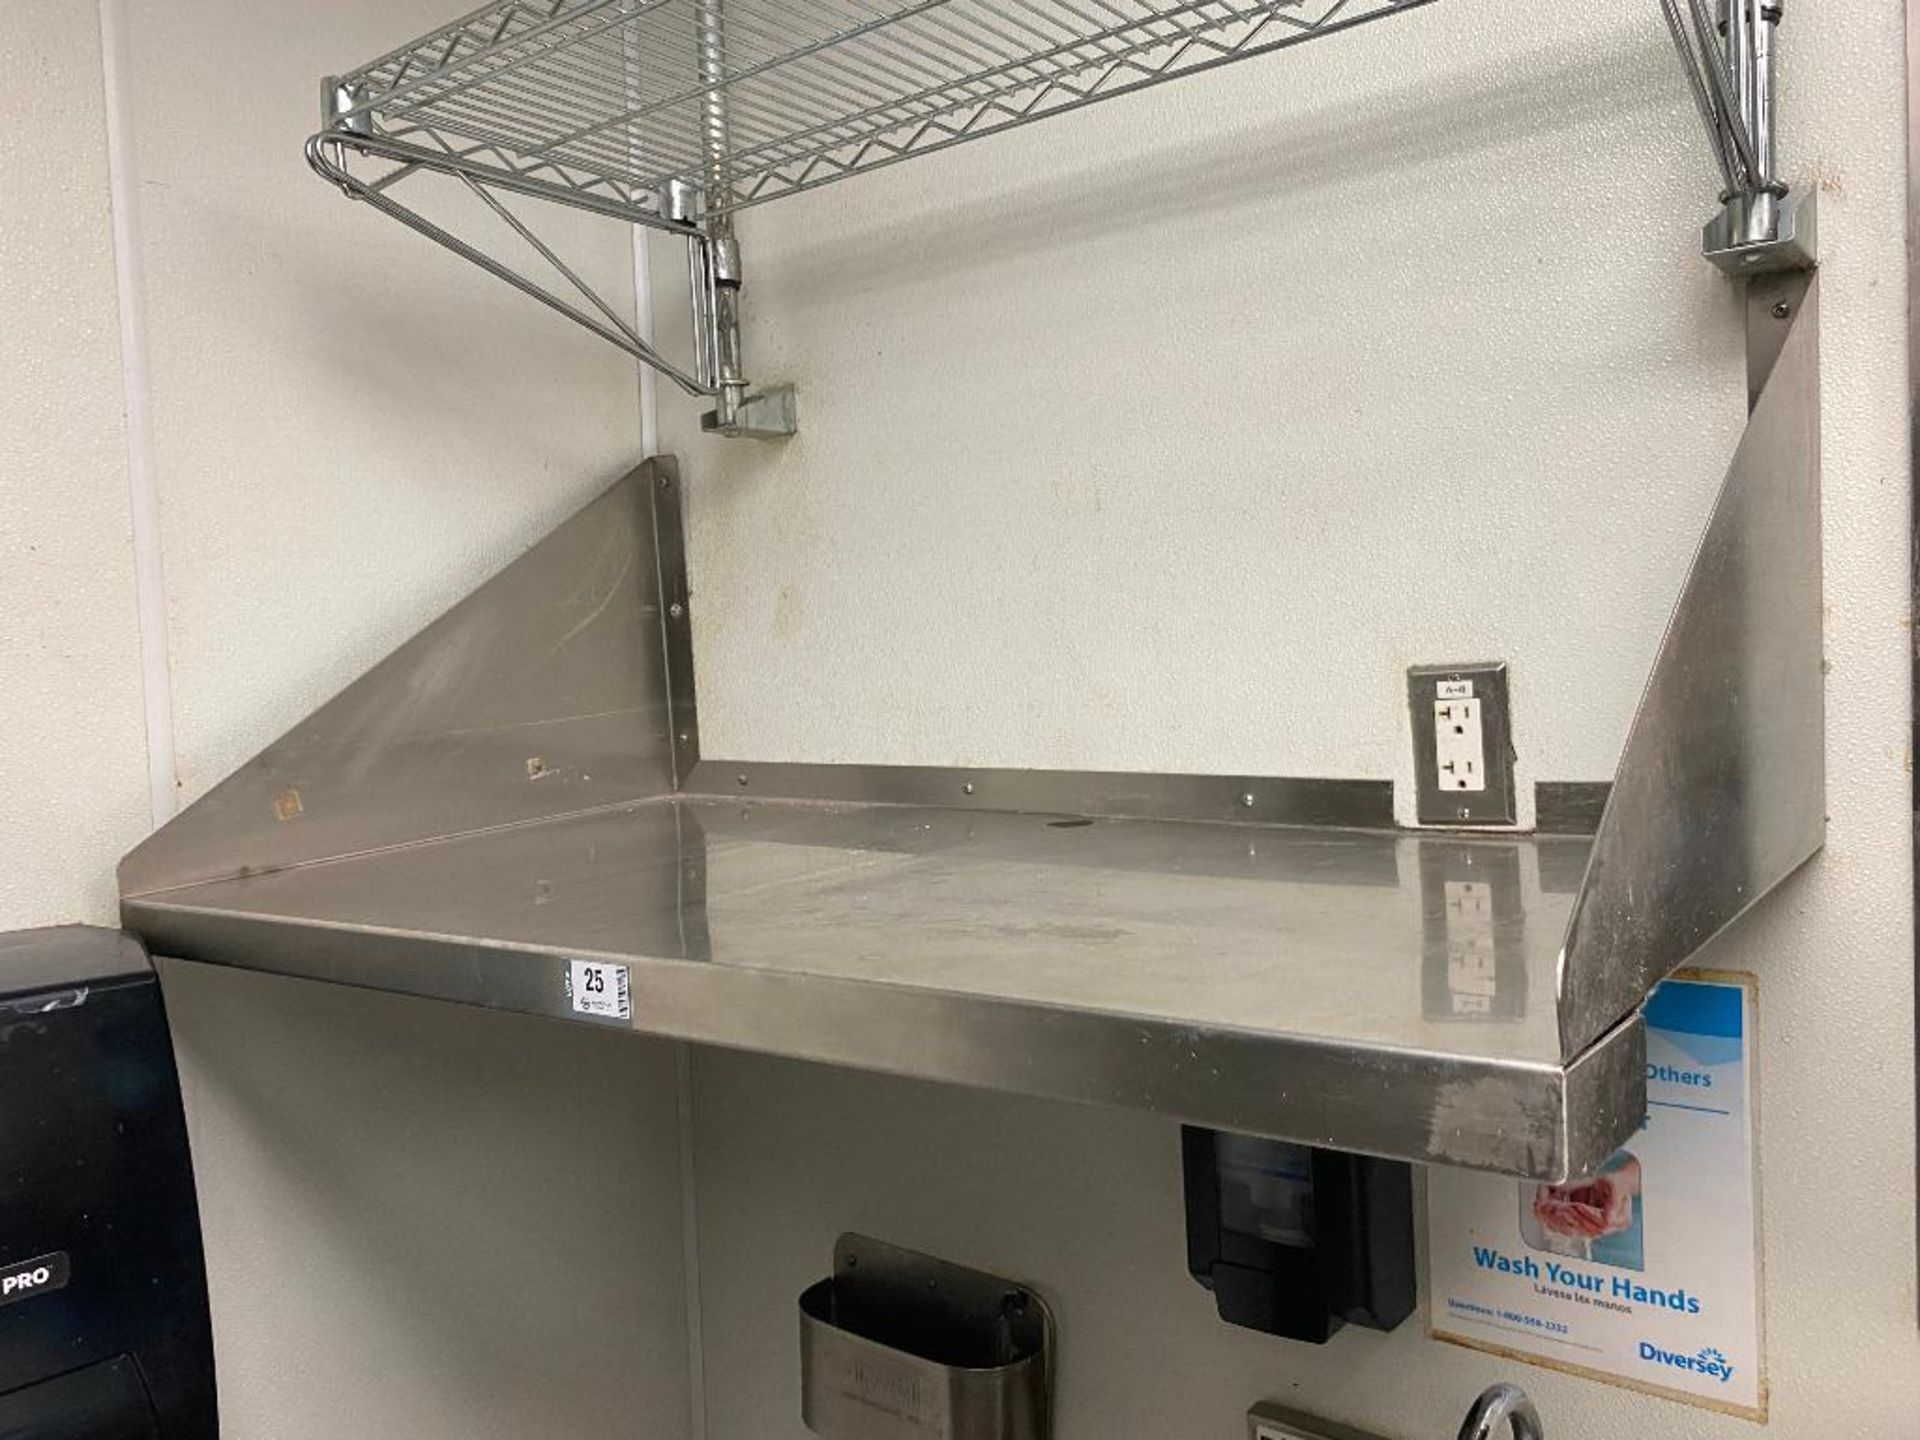 """42"""" X 22"""" STAINLESS STEEL WALL SHELF & 35"""" X 15"""" CHROME WIRE SHELF - NOTE: REQUIRES REMOVAL FROM WAL - Image 3 of 5"""